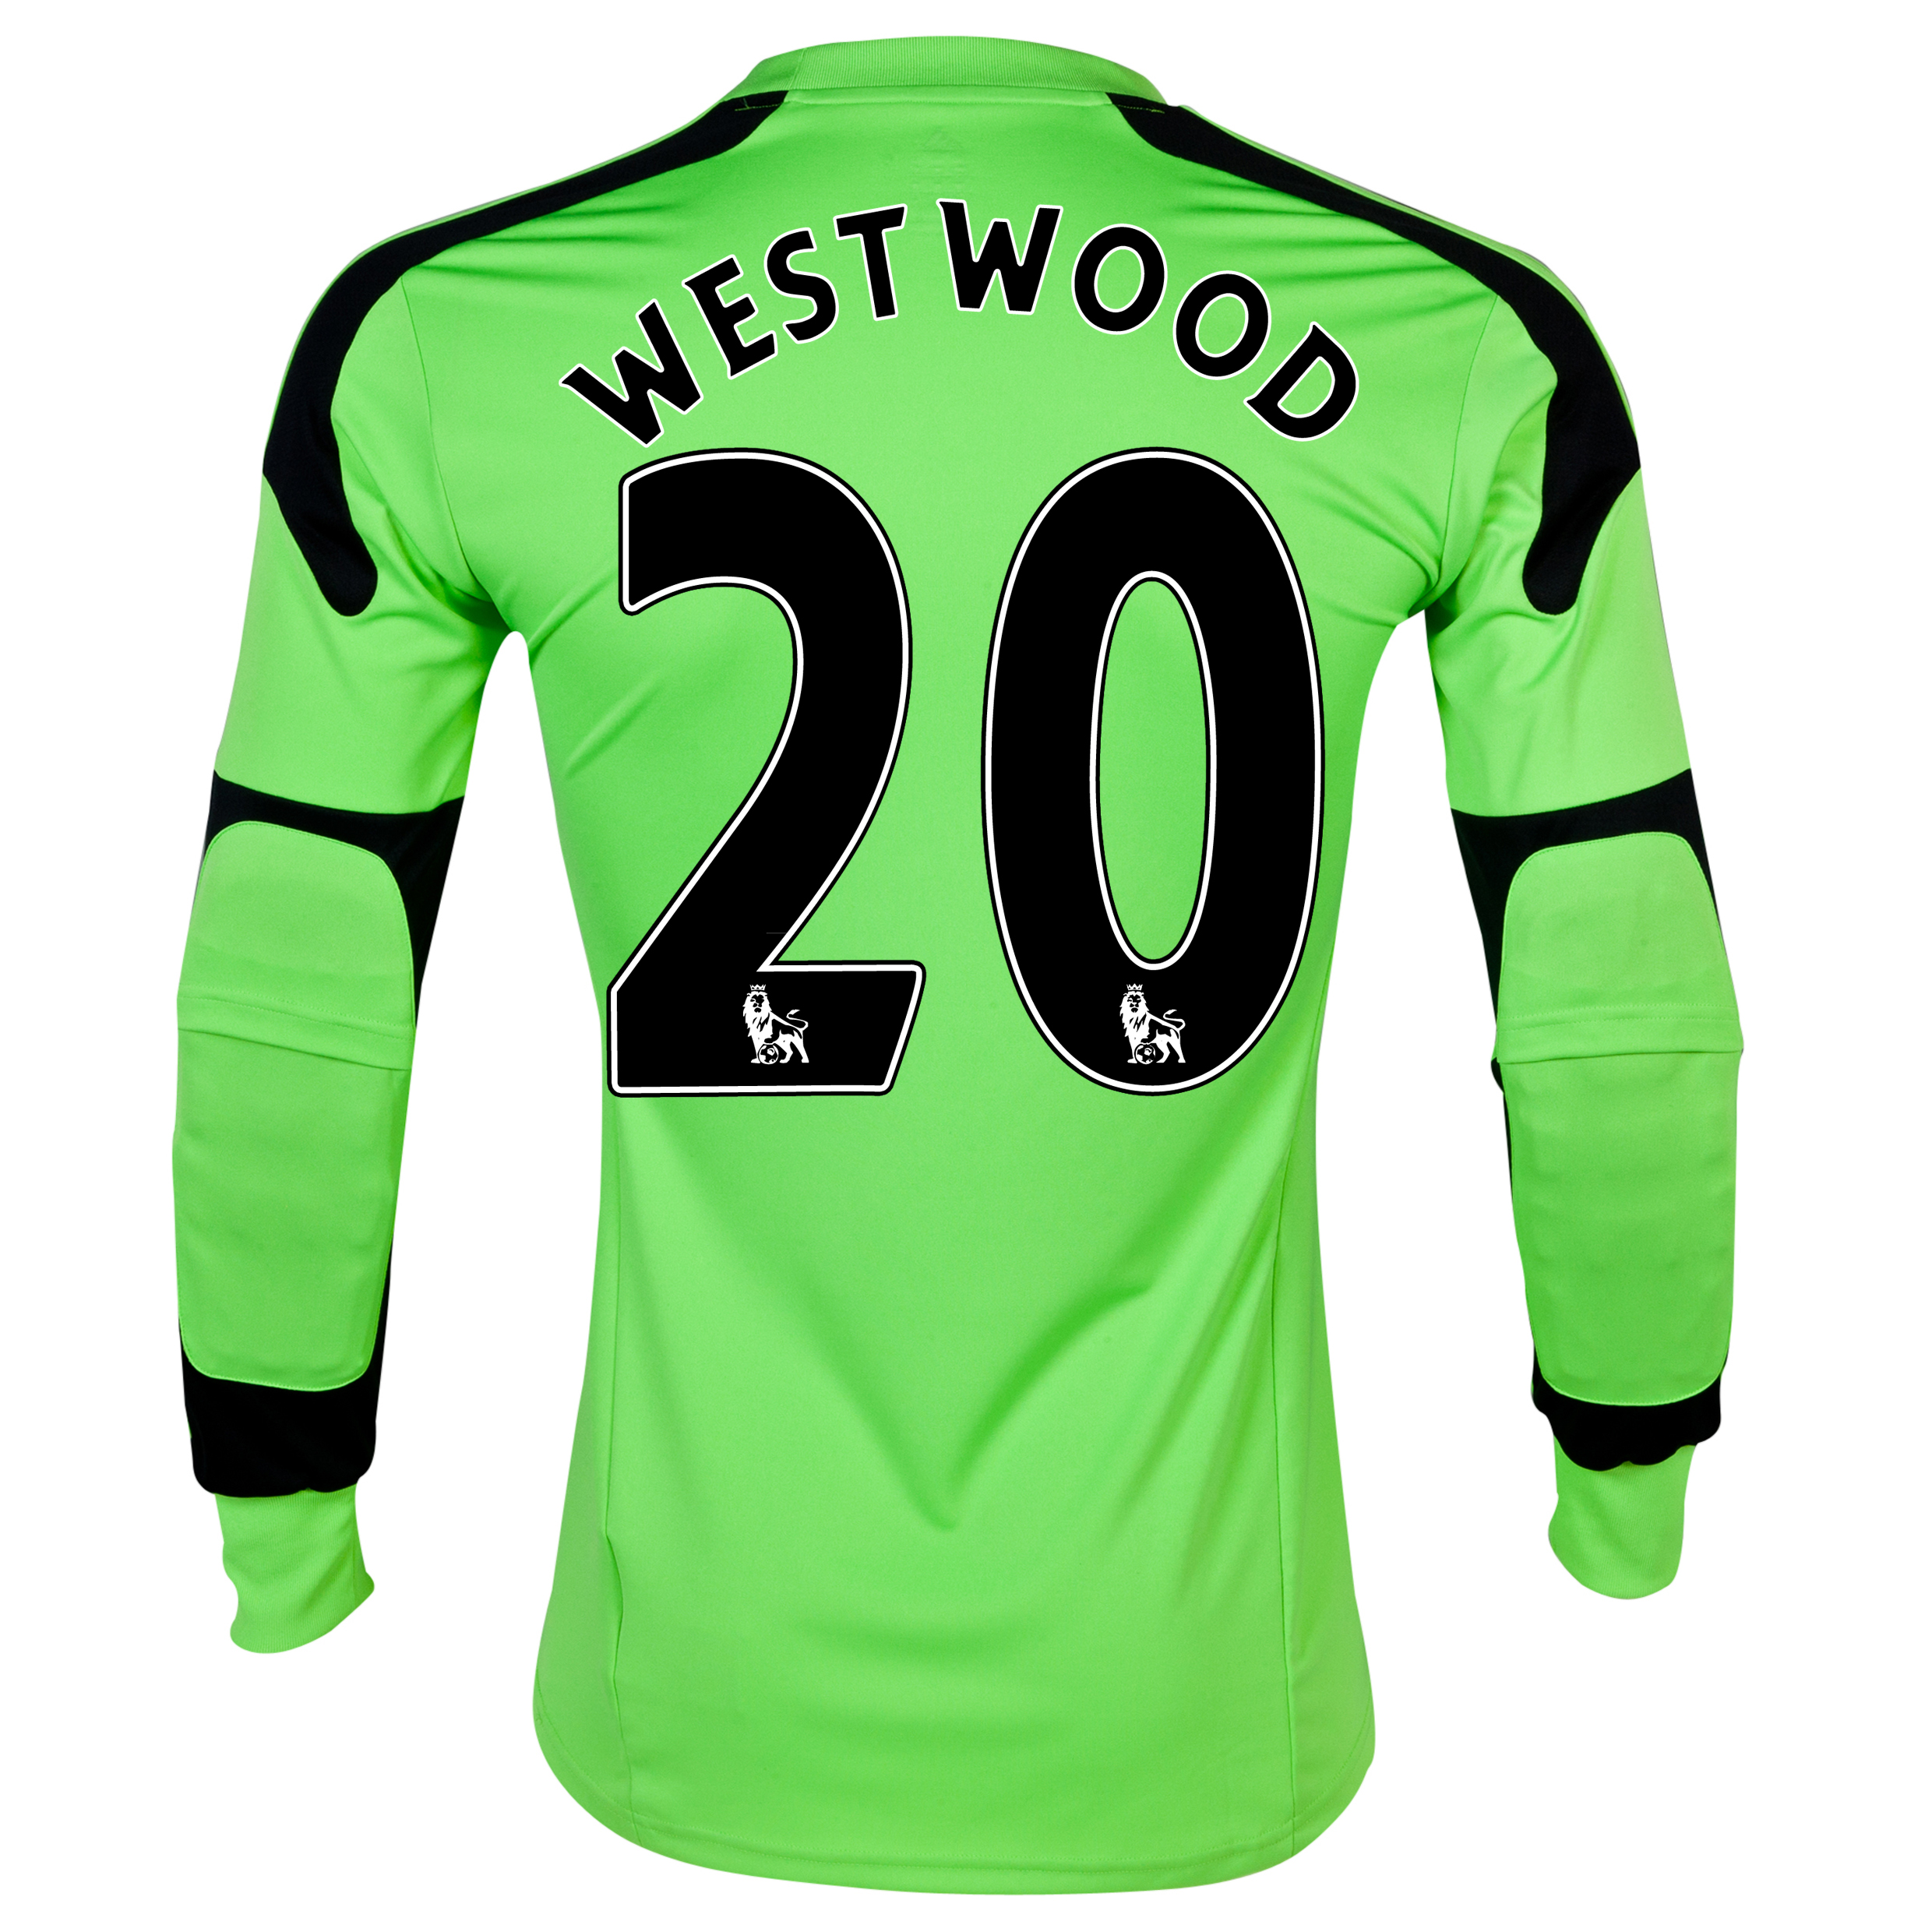 Sunderland Home Goalkeeper Shirt 2013/14  with Westwood 20 printing